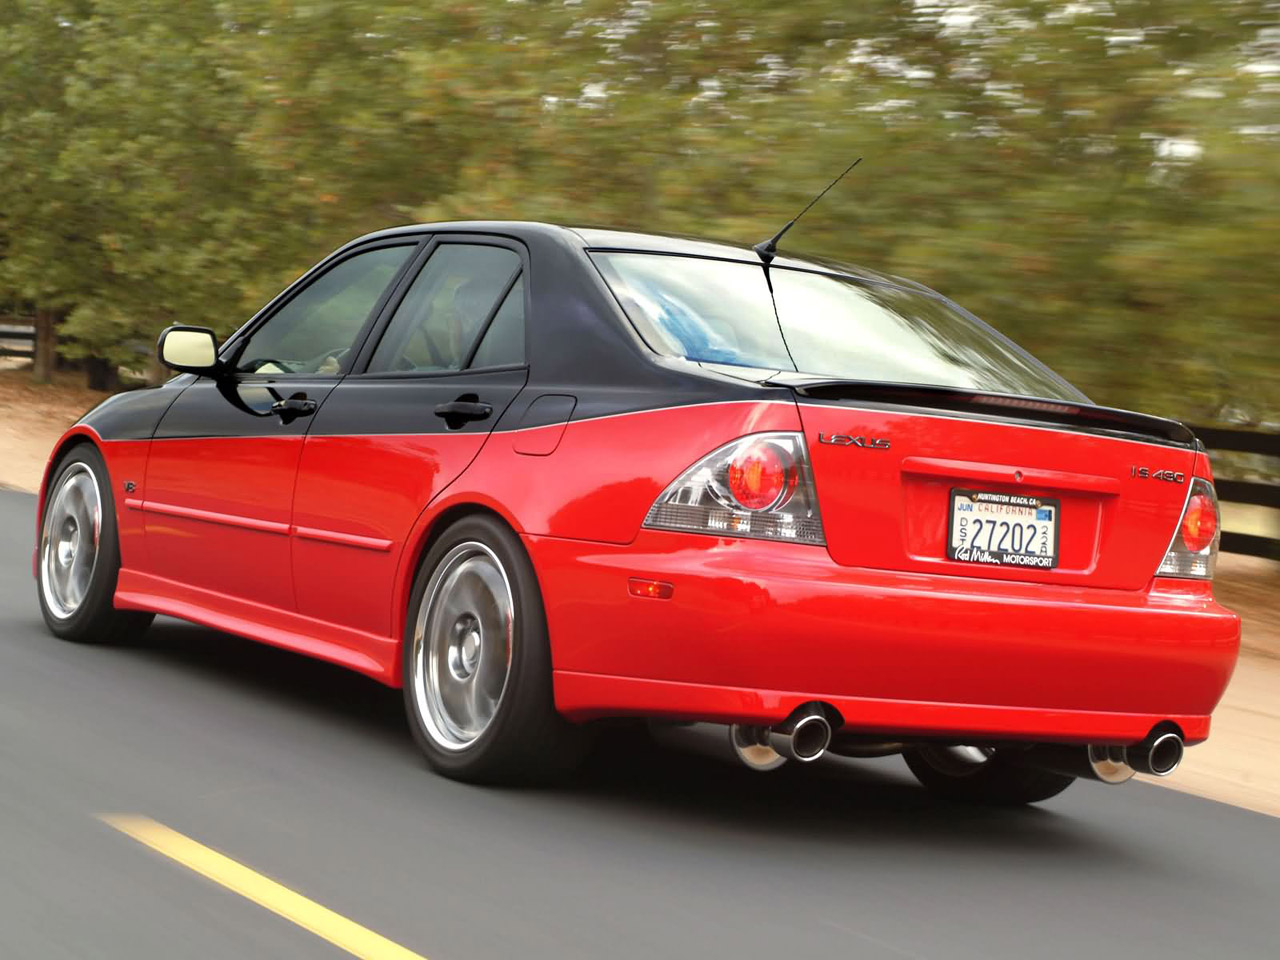 Lexus IS 430 in motion, rear quarter